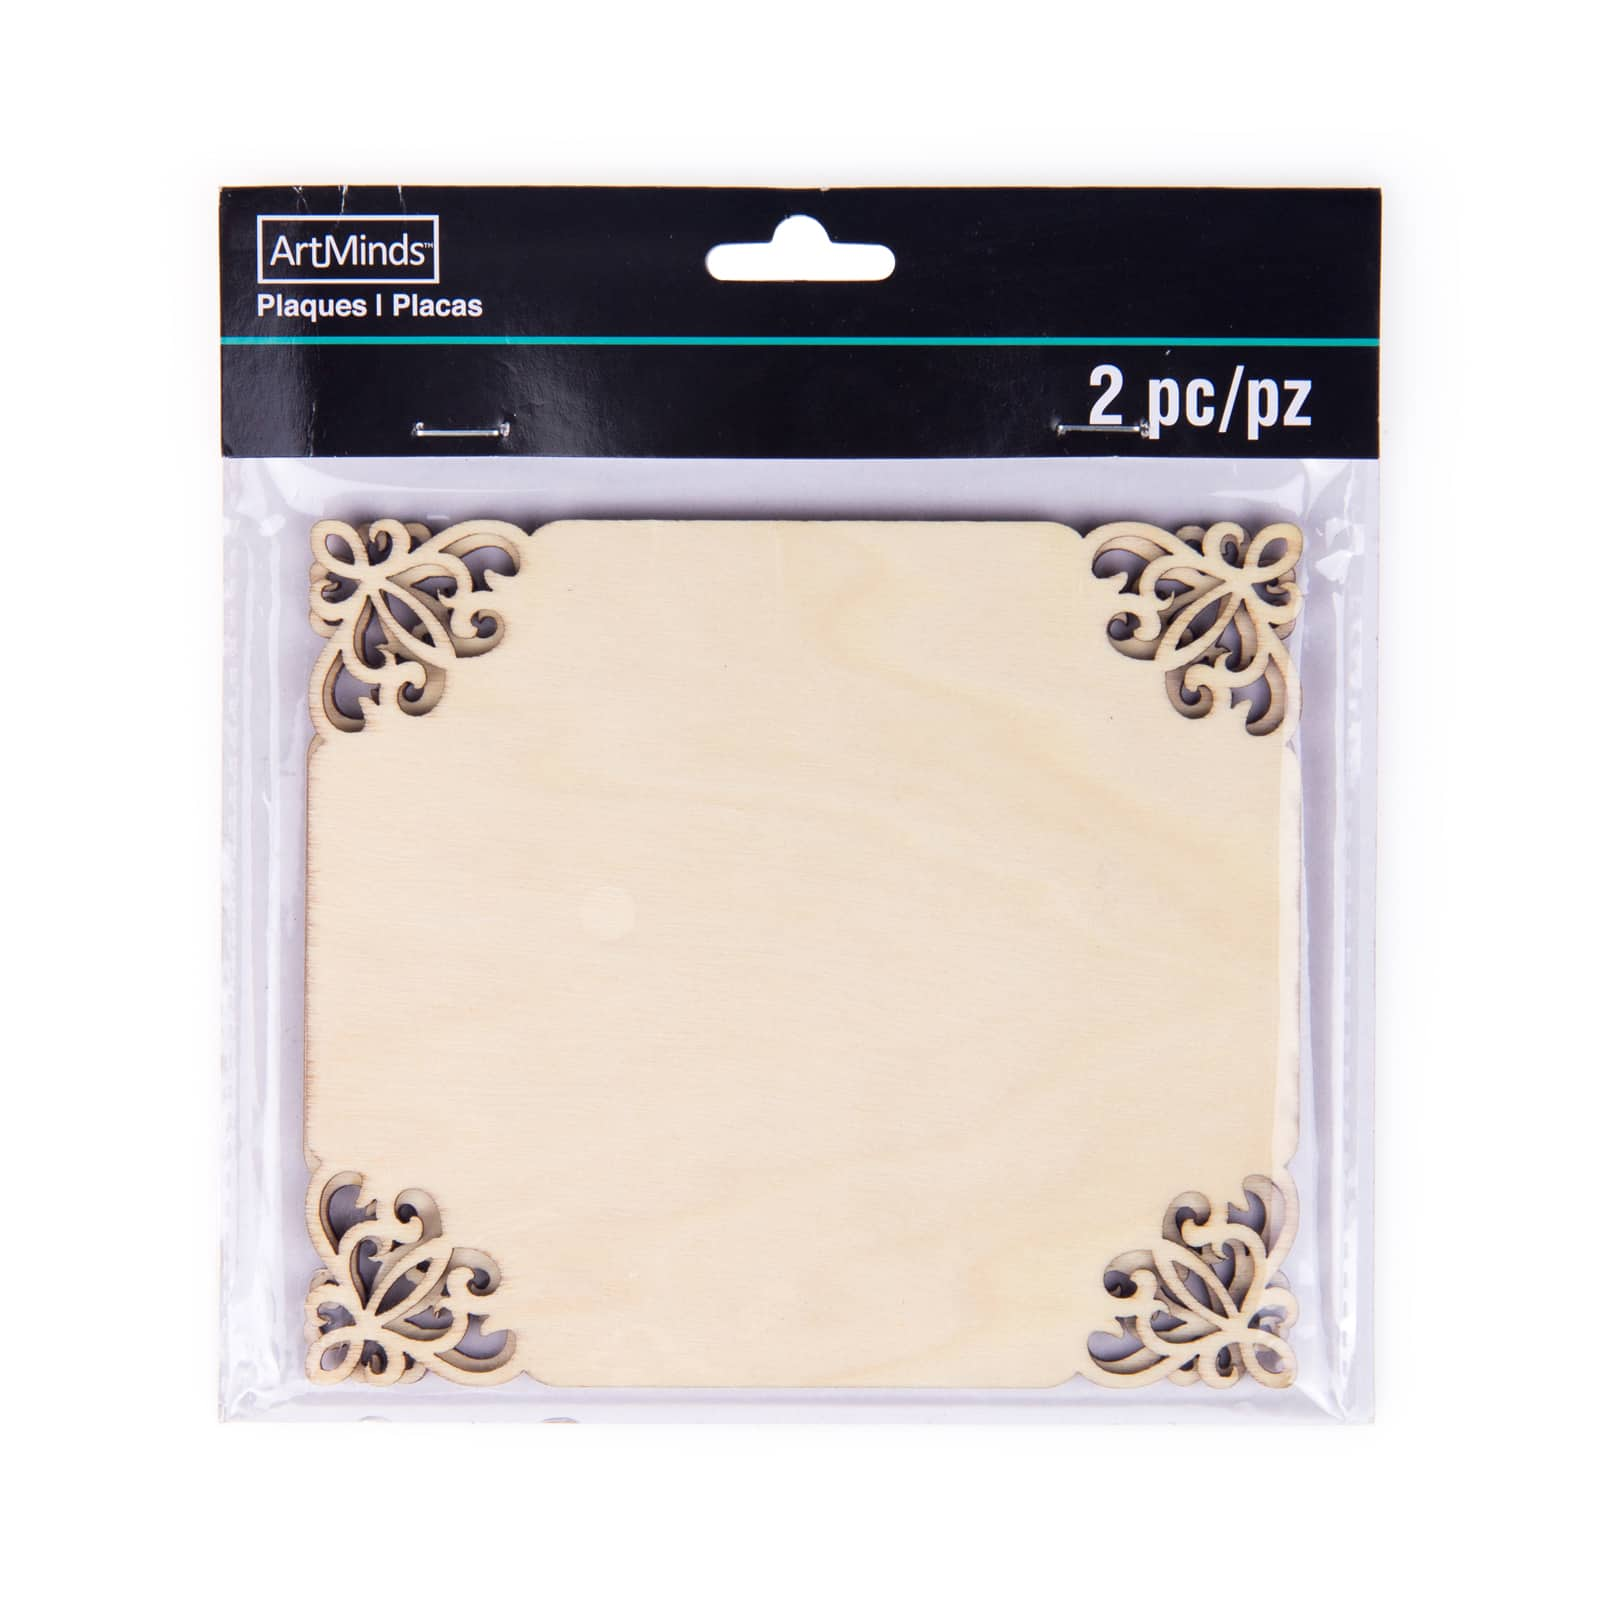 Shop For The Wooden Laser Cut Plaques By Artminds At Michaels